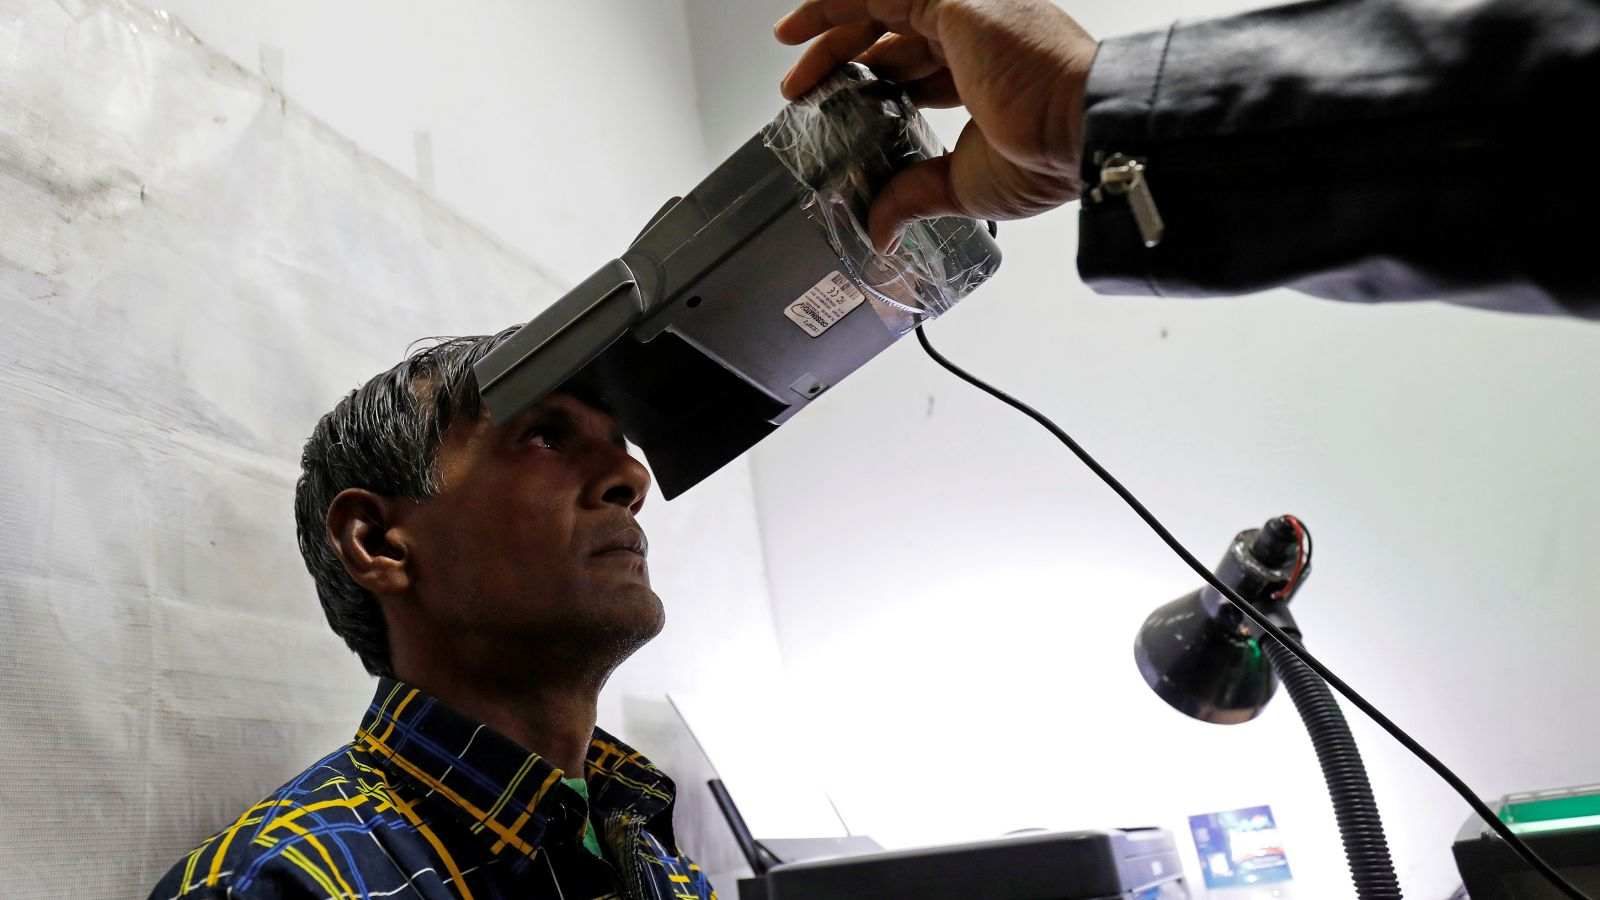 Aadhaar is voluntary—but millions of Indians are already trapped